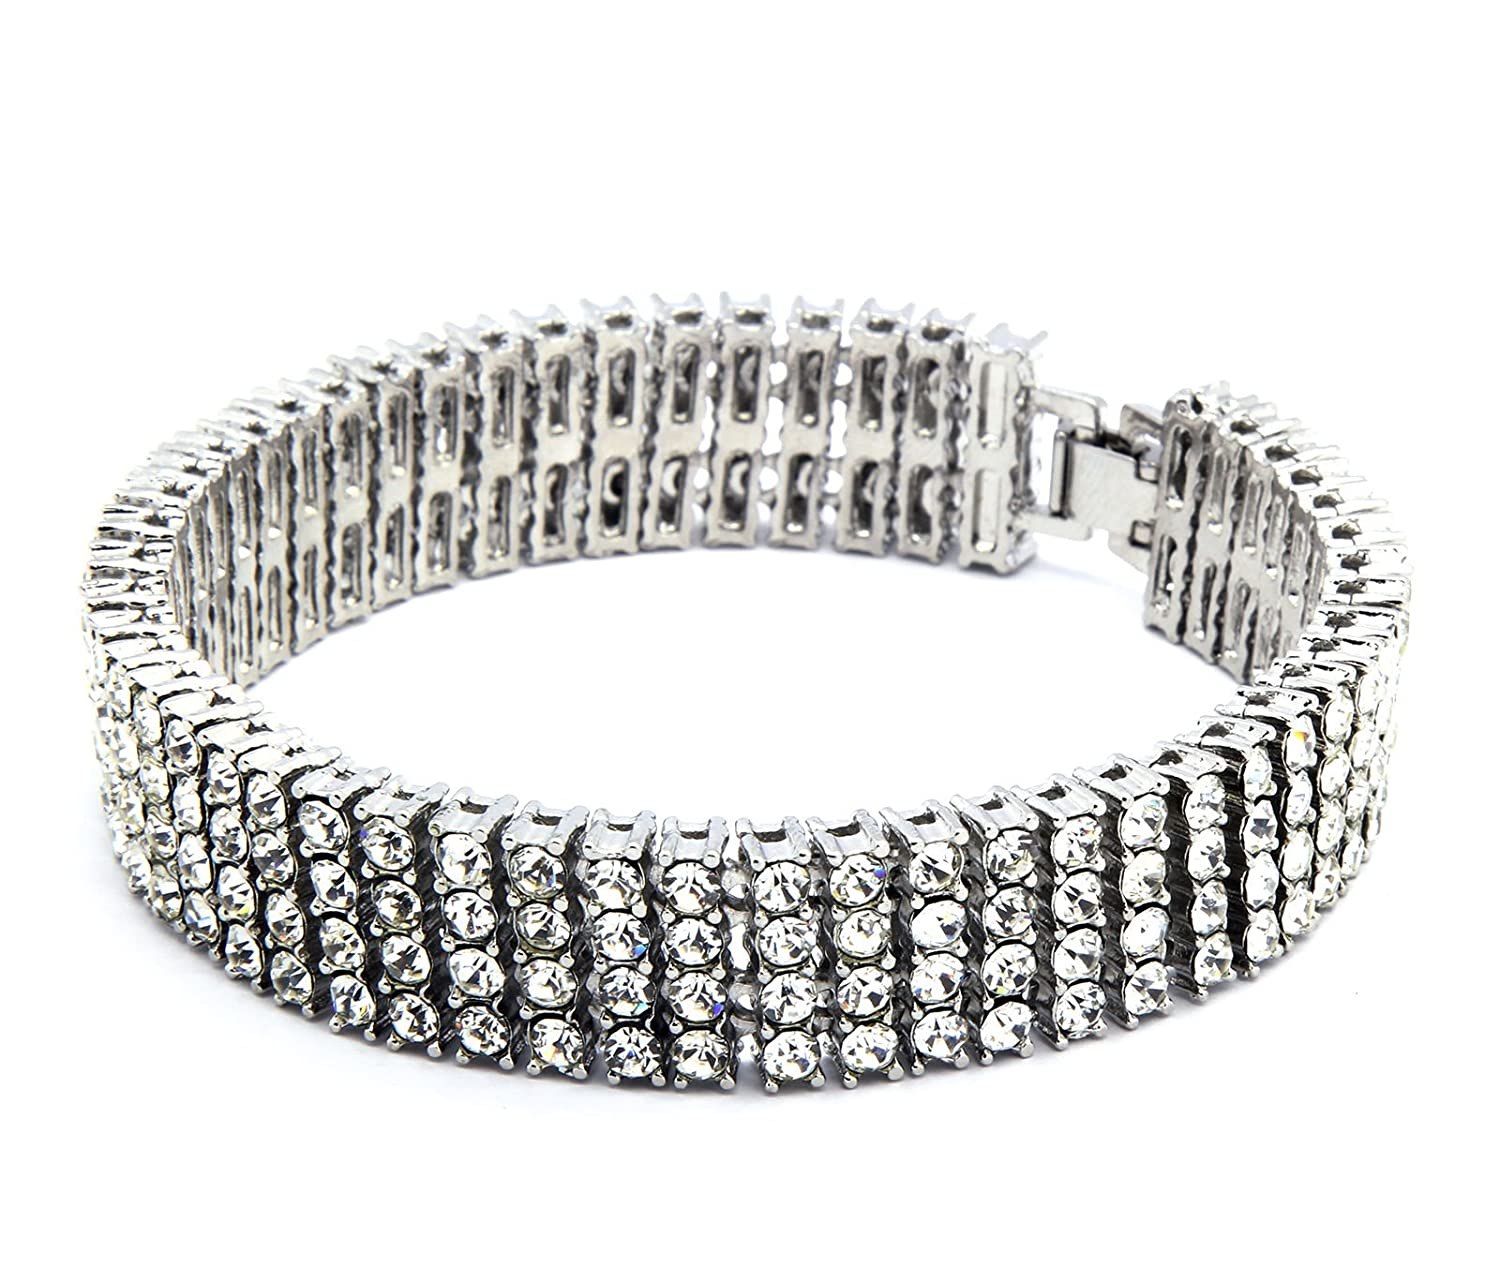 Mens Silver Plated Iced Out Clear Cz Stones 4 Row Hip Hop Bracelet 8 Inches